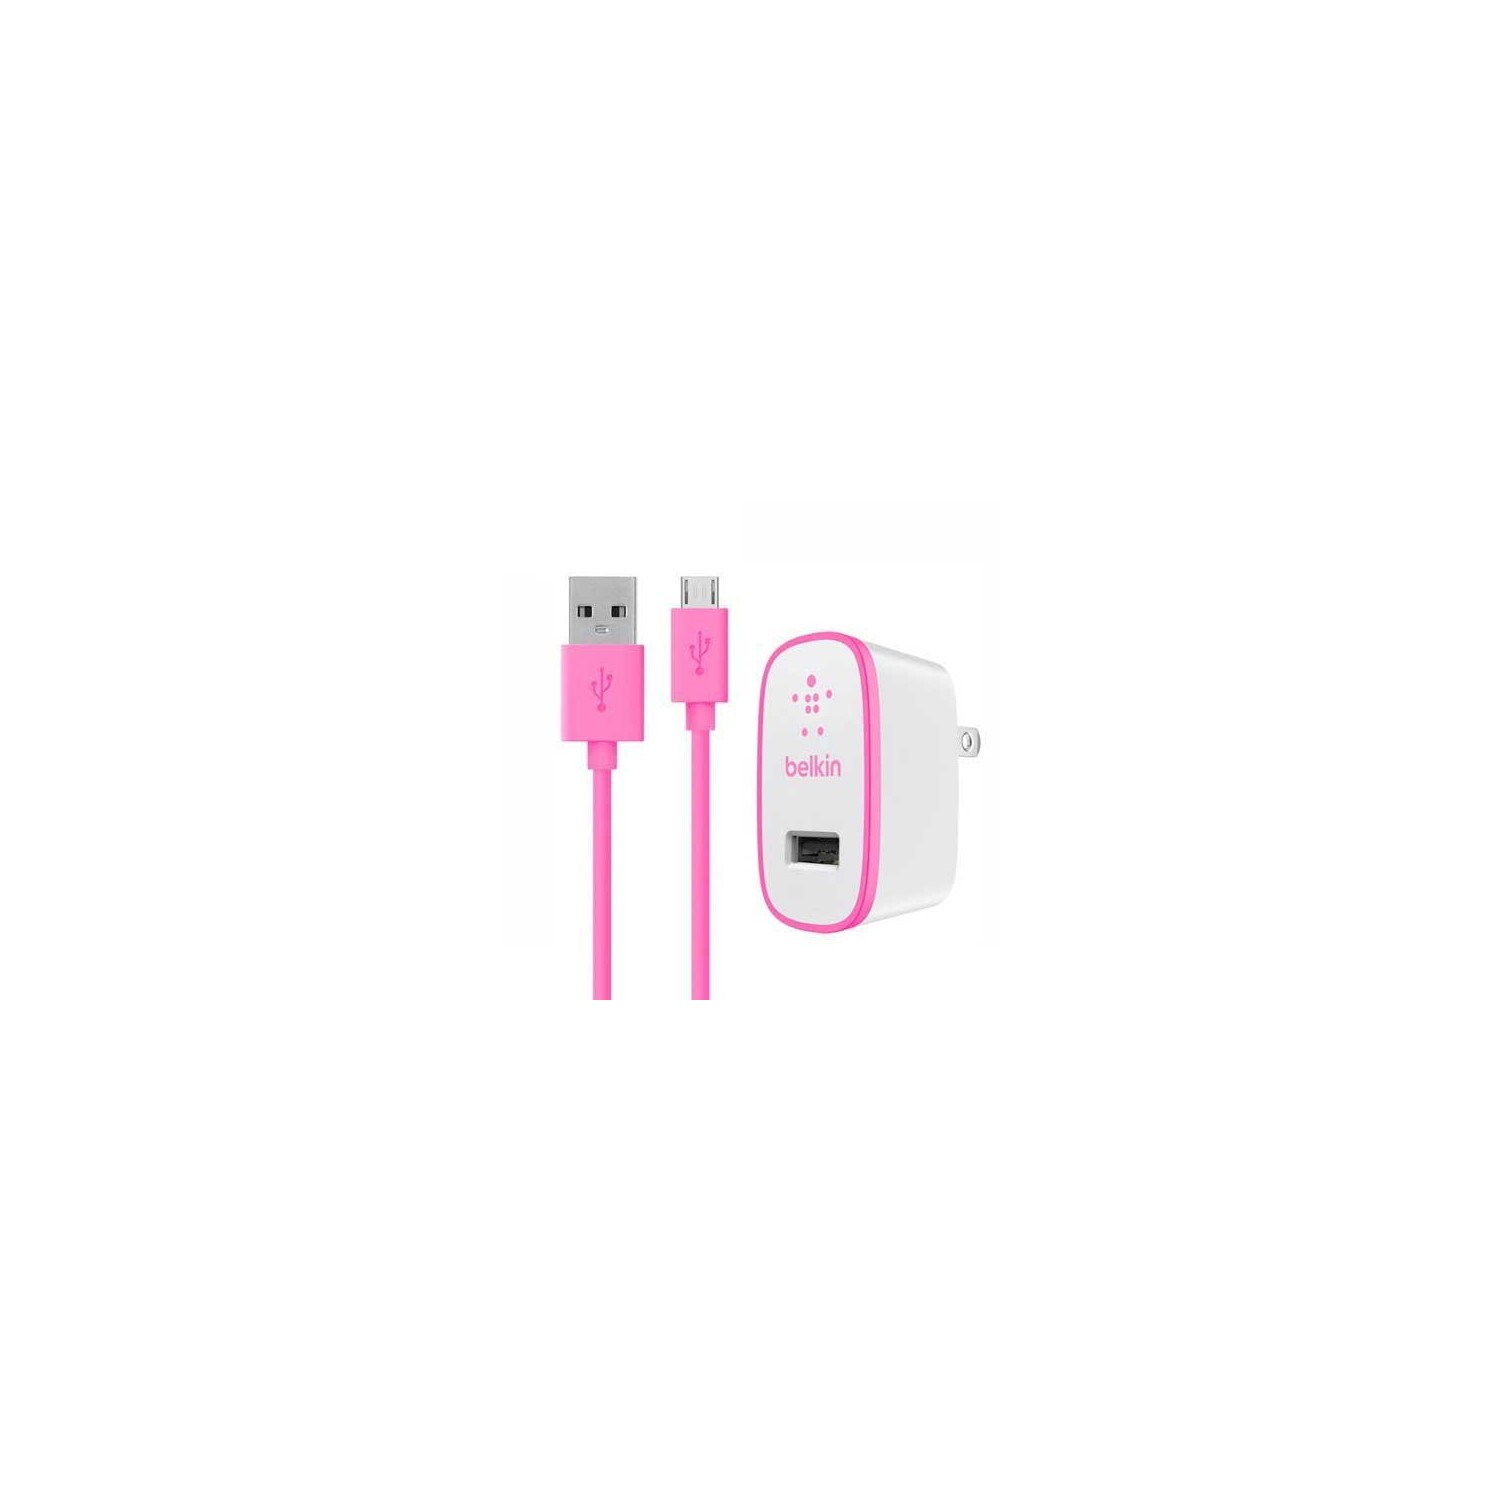 Charger - Micro USB 2.1 Universal AC Charger